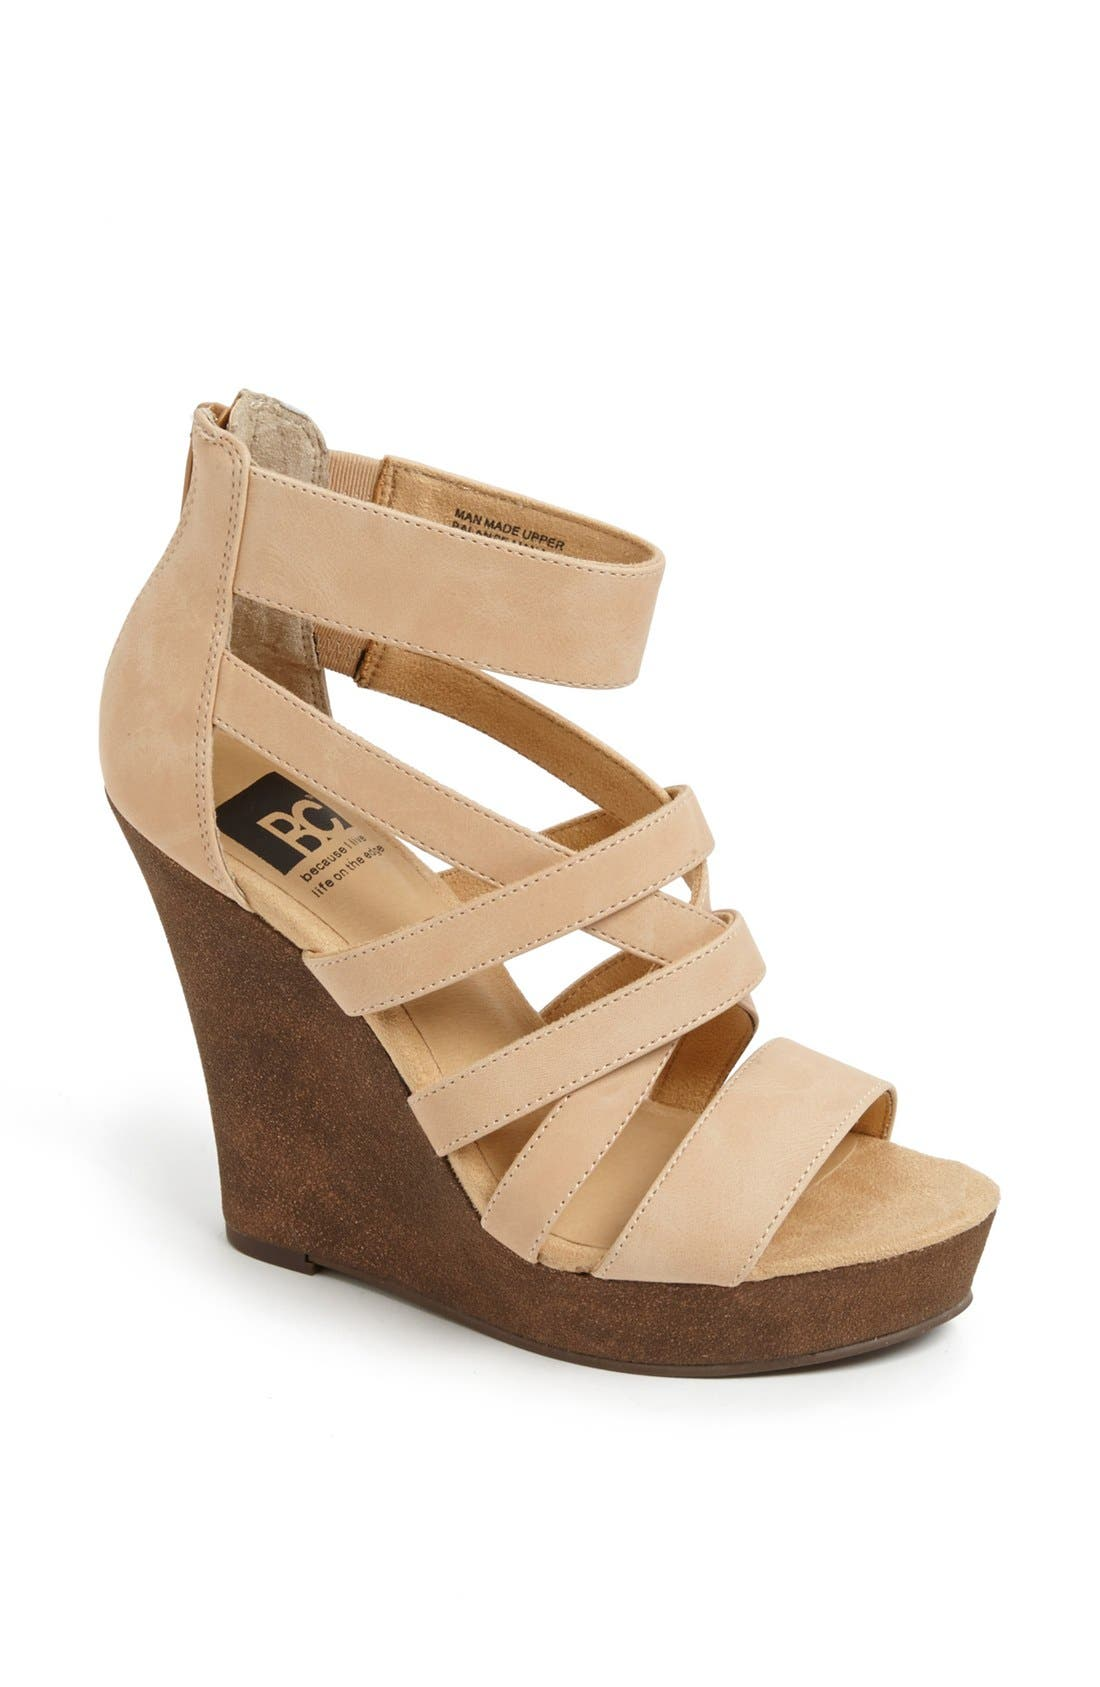 'Tell You What' Wedge Sandal,                             Main thumbnail 1, color,                             Nude